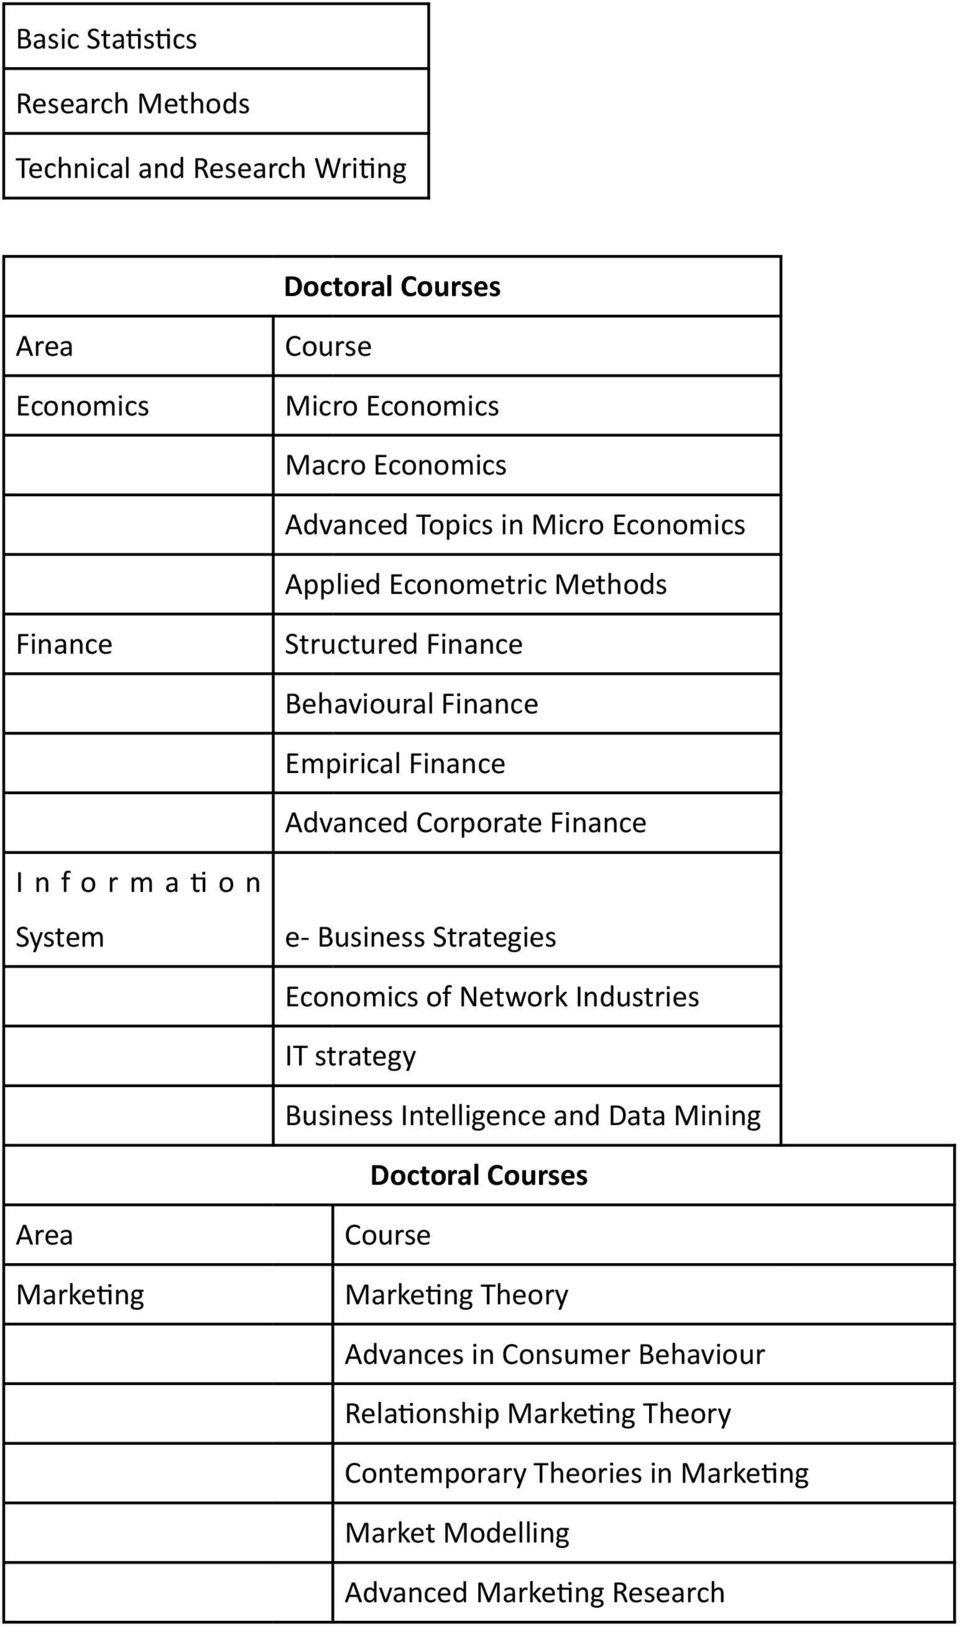 System e- Business Strategies Economics of Network Industries IT strategy Business Intelligence and Data Mining Doctoral Courses Area Marke@ng Course